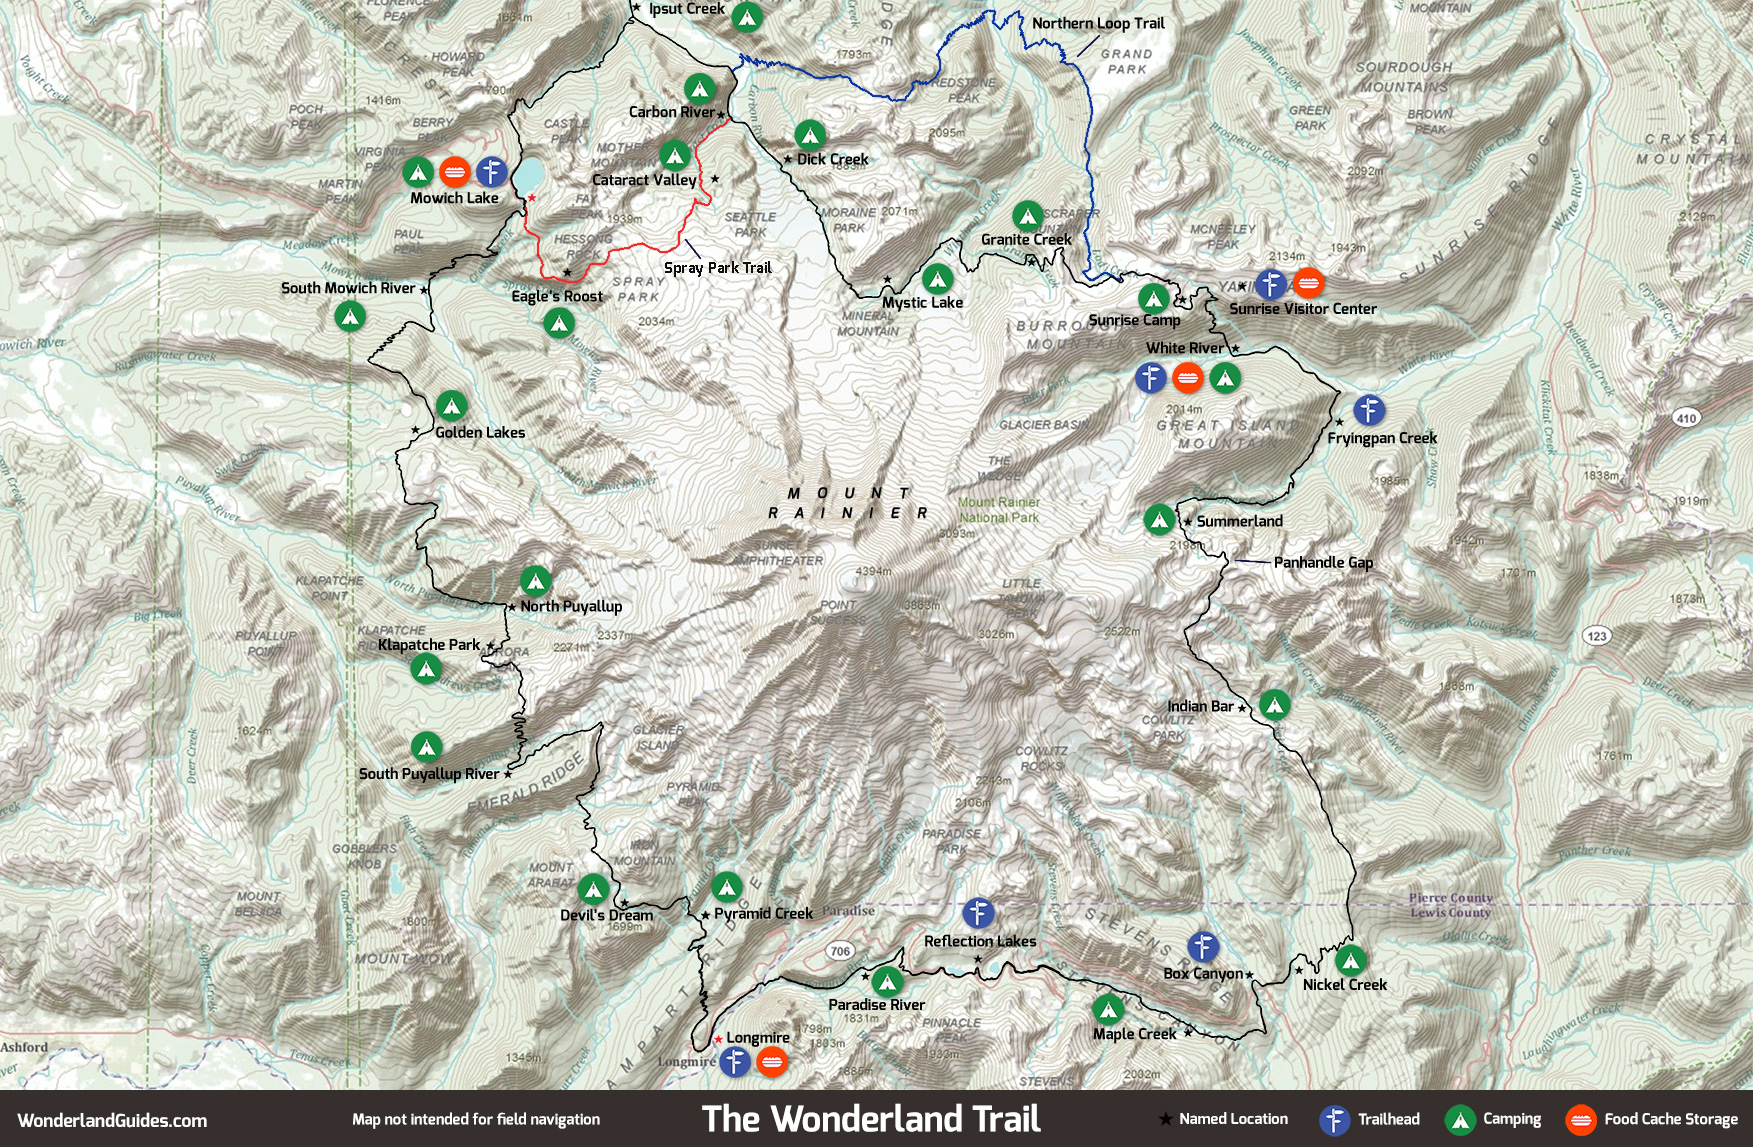 A map of the Wonderland Trail encircling Mount Rainier